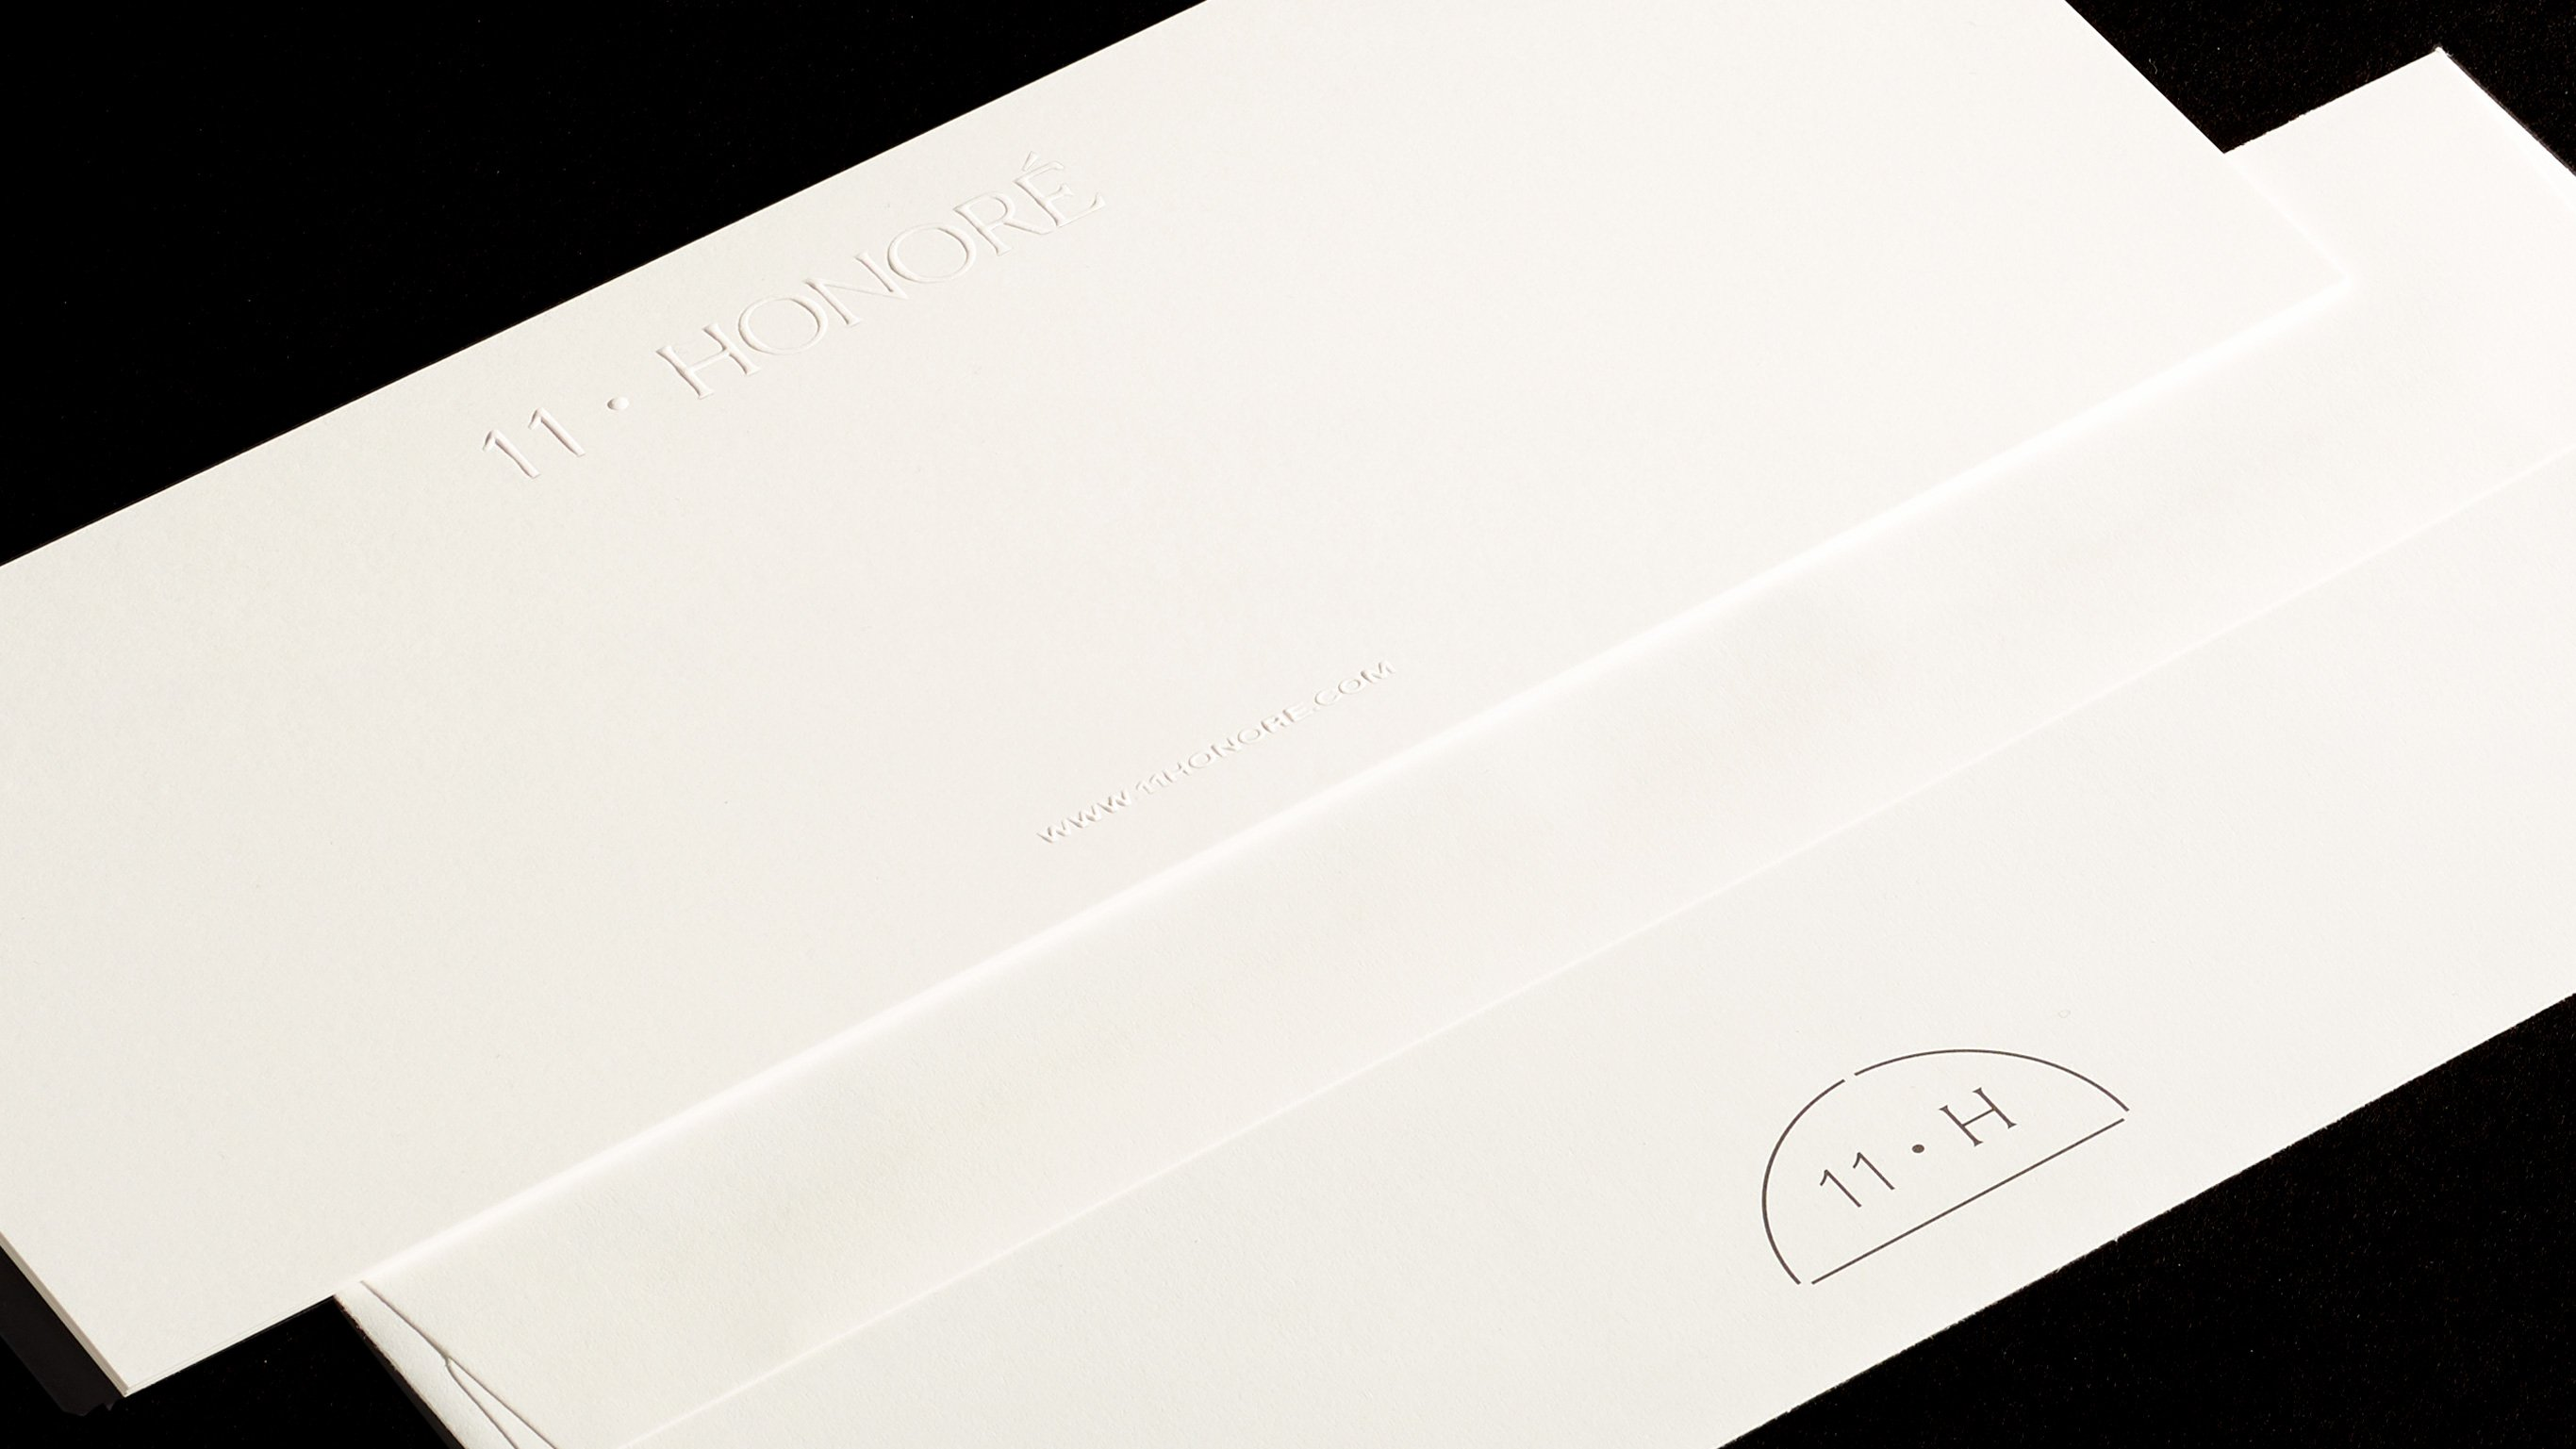 Close up of 11 Honoré embossed envelopes with 11 H seal, print design and branding by RoAndCo